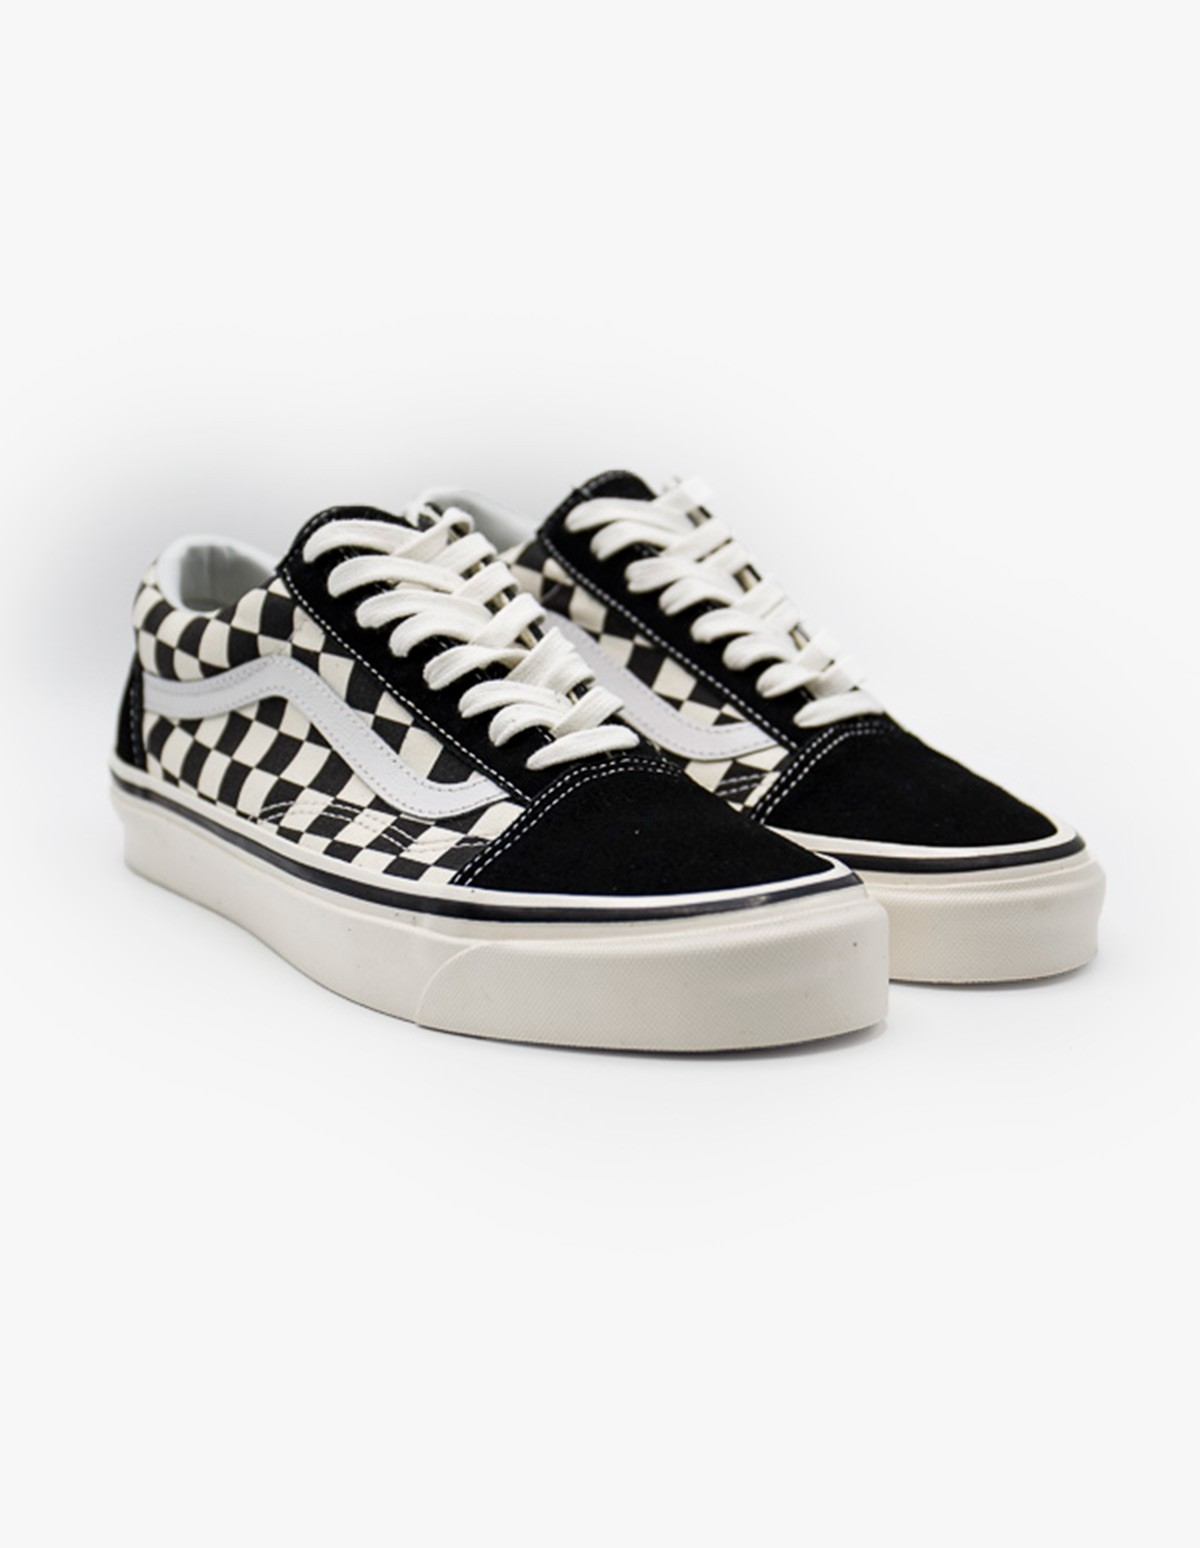 Vans Old Skool 36 DX in Black & White Checkerboard